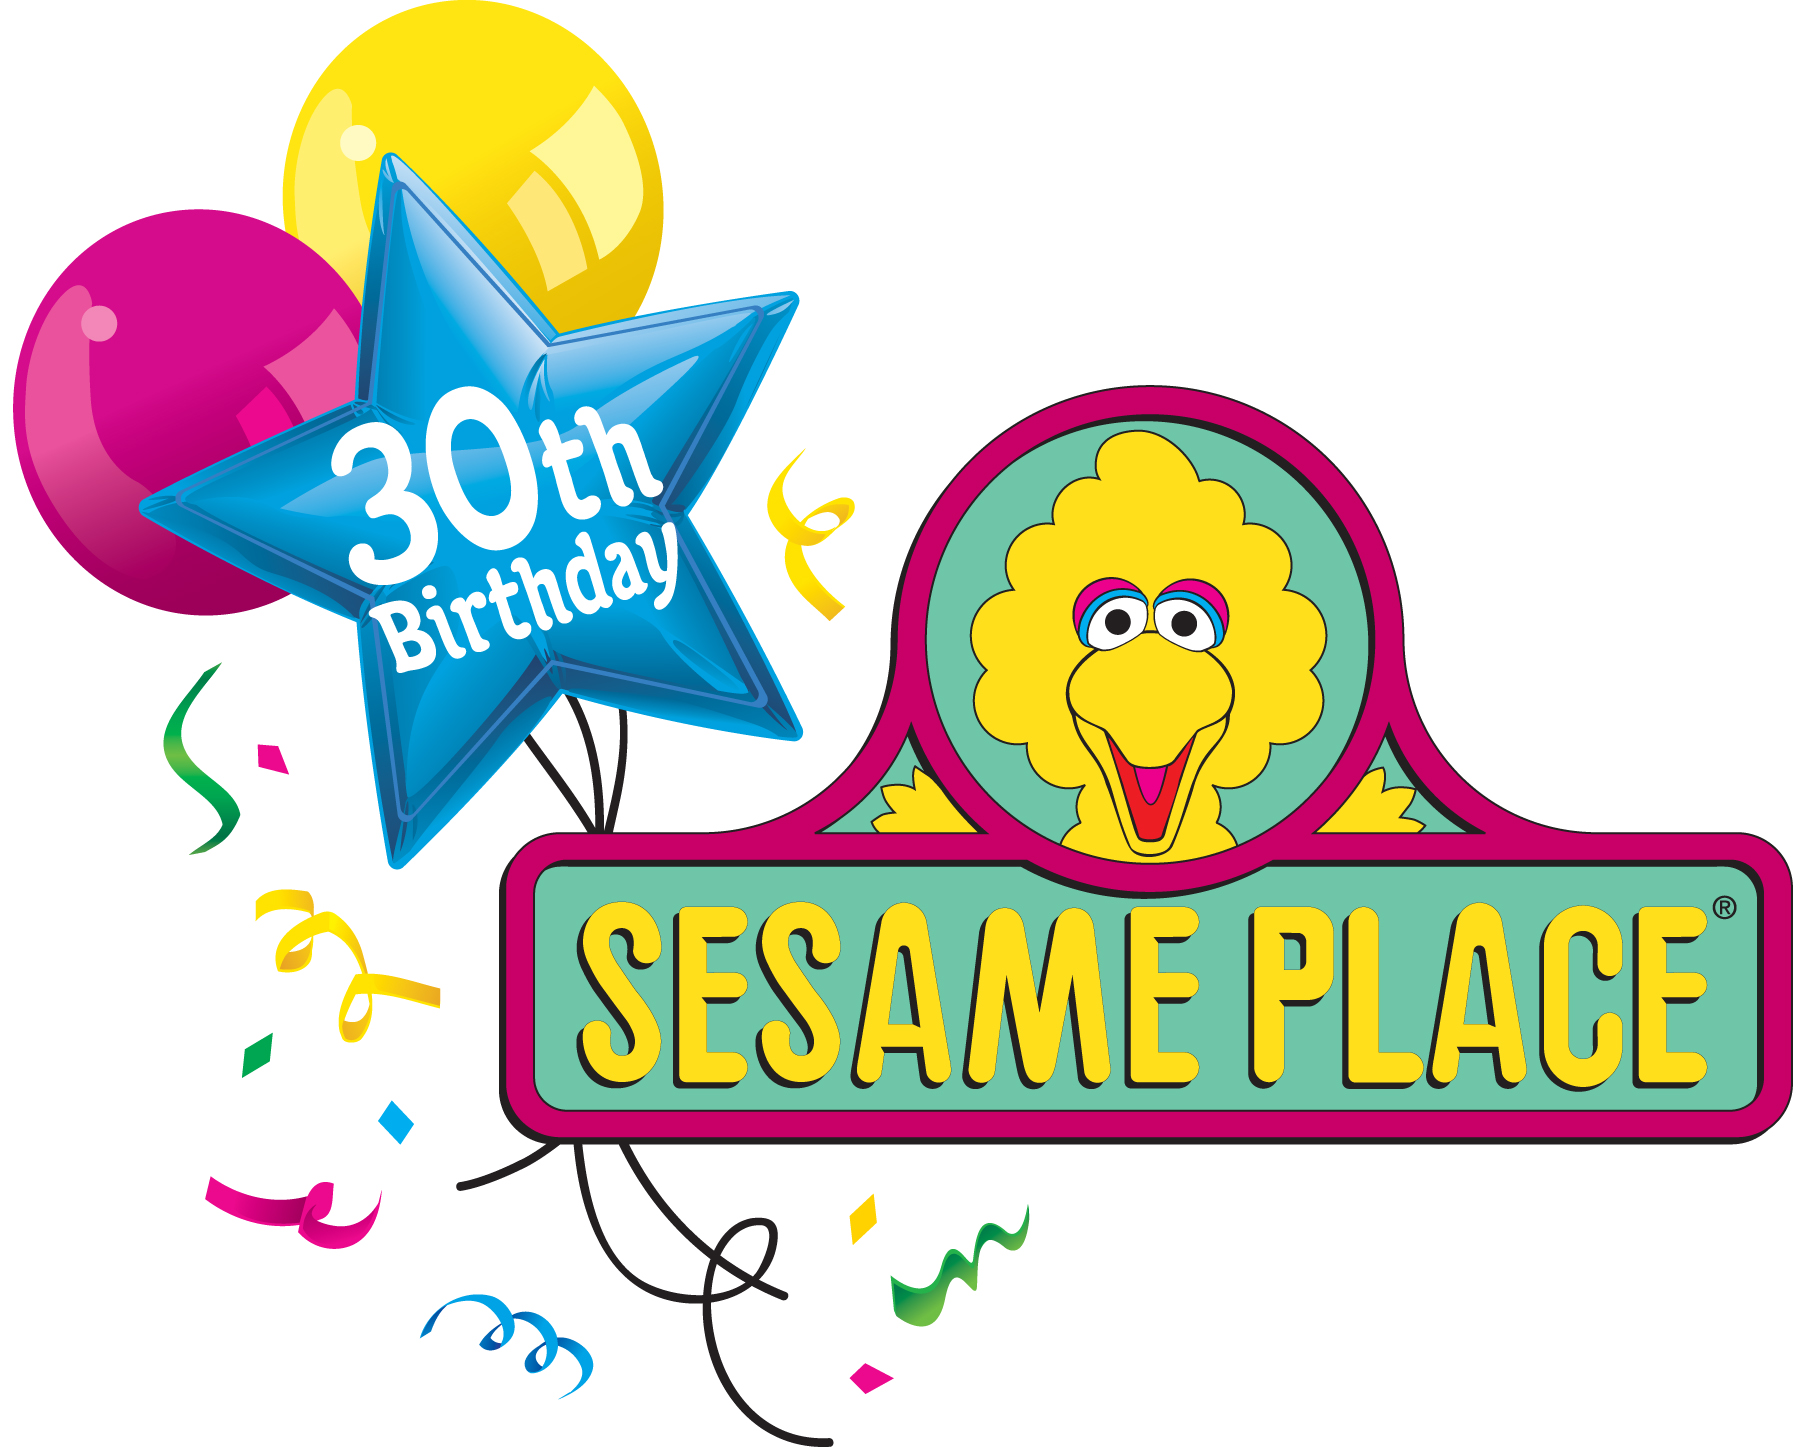 Sesame Place what great memories – Family 4 Pack of tickets giveaway